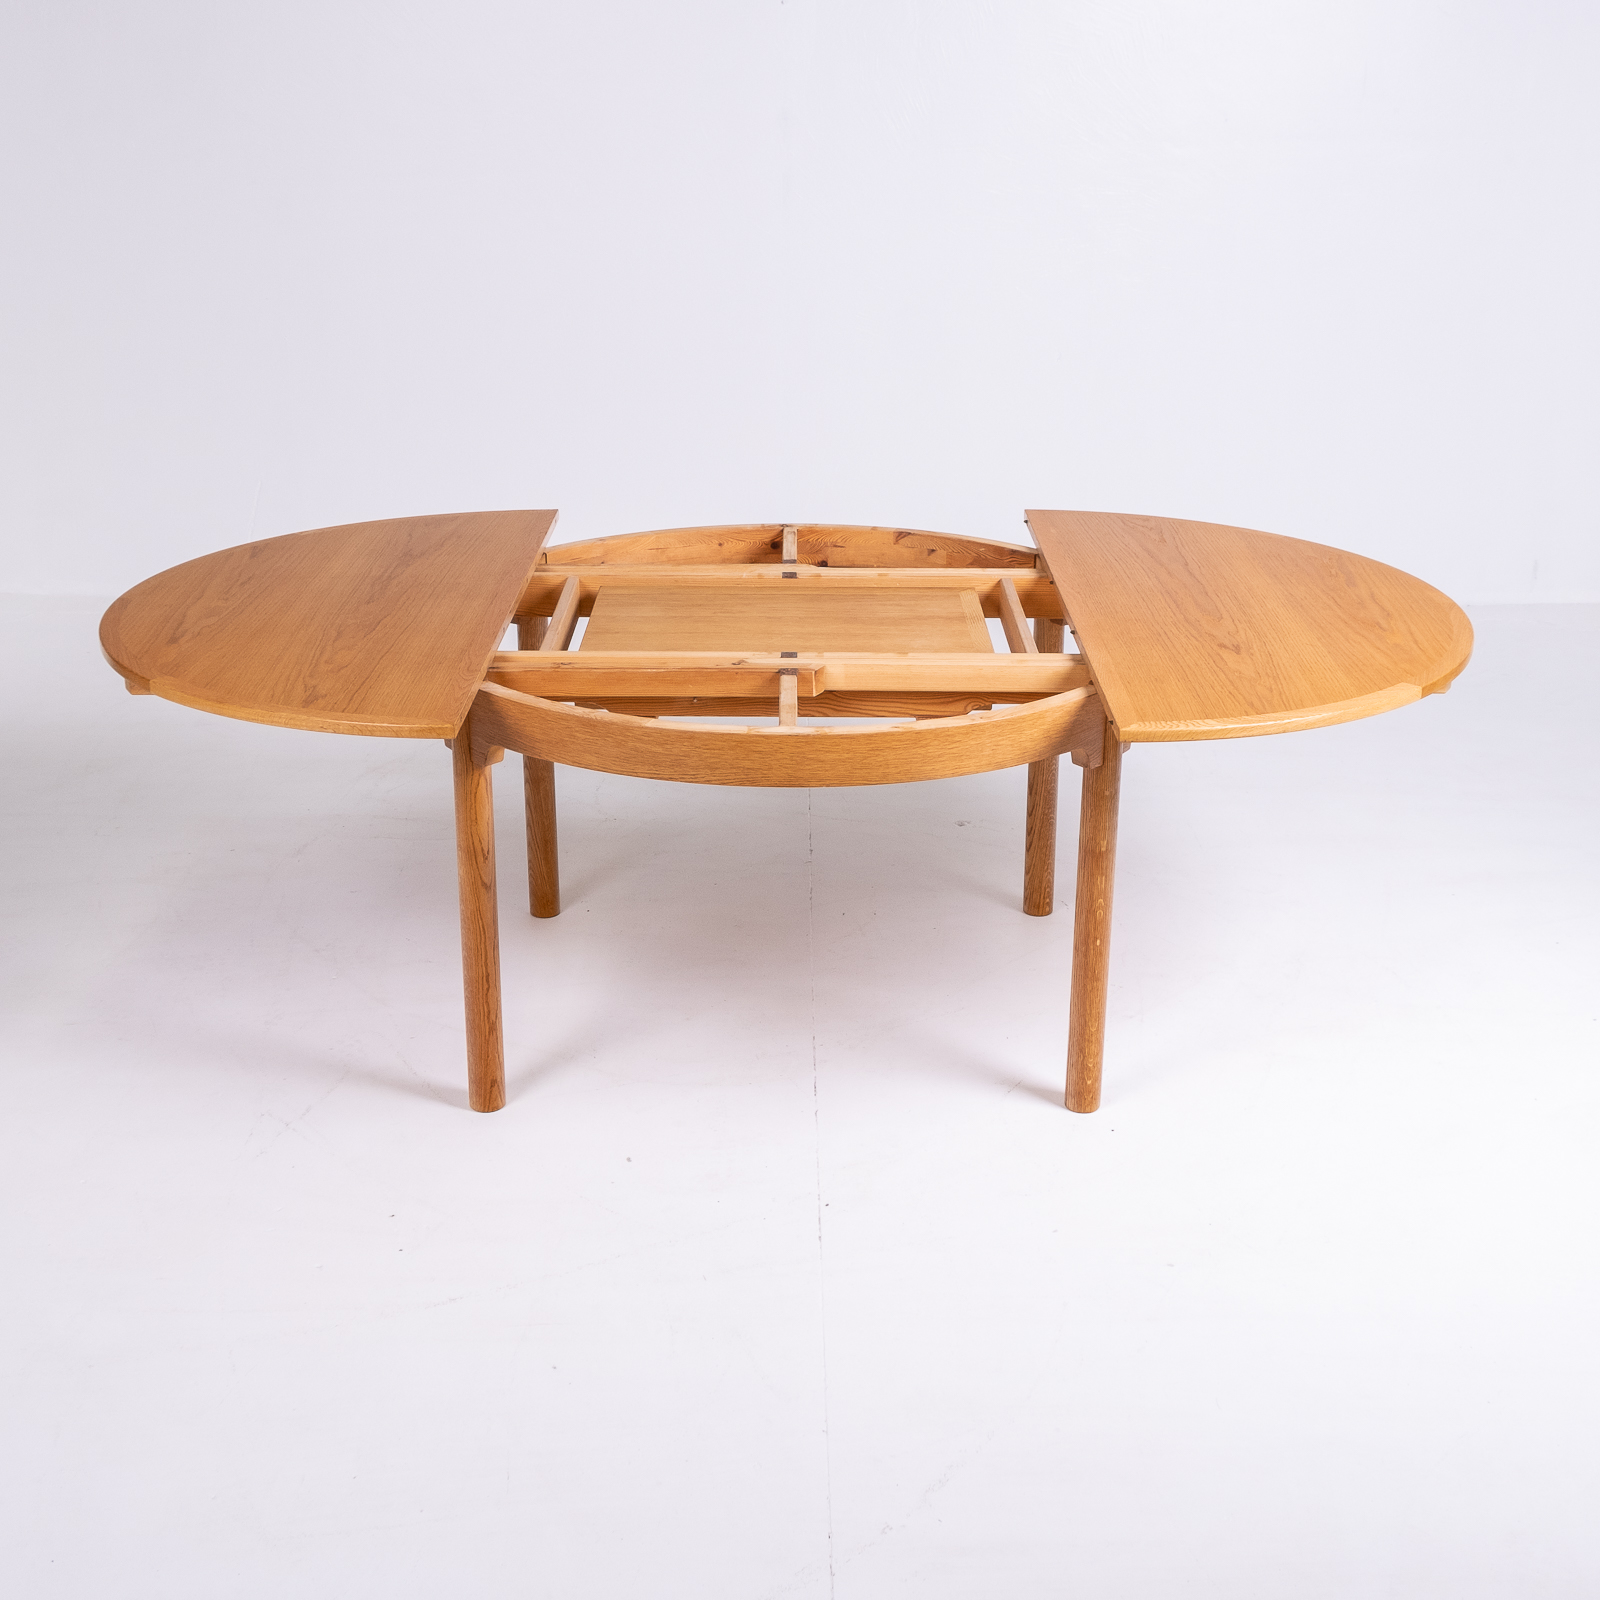 Round 140 Dining Table By Borge Mogensen For Karl Andersson & Söner In Oak With Butterfly Extensions, 1960s, Denmark74